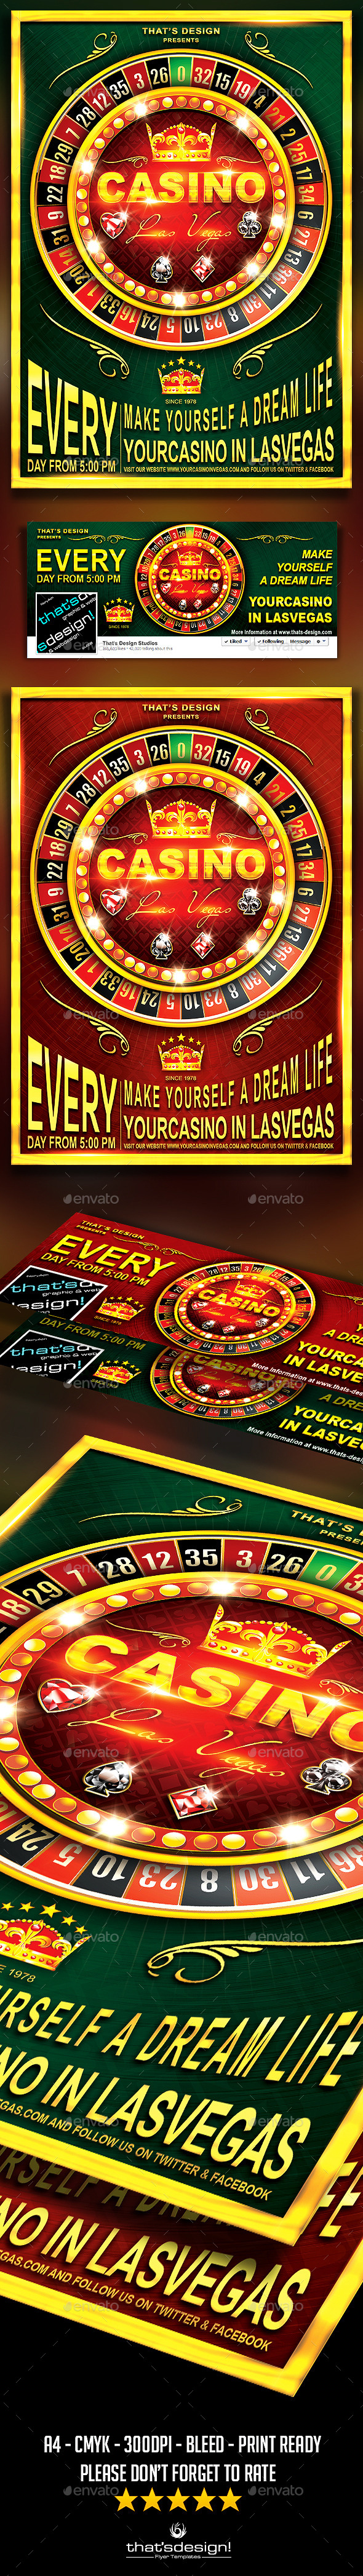 Casino Flyer Template V2 - Clubs & Parties Events